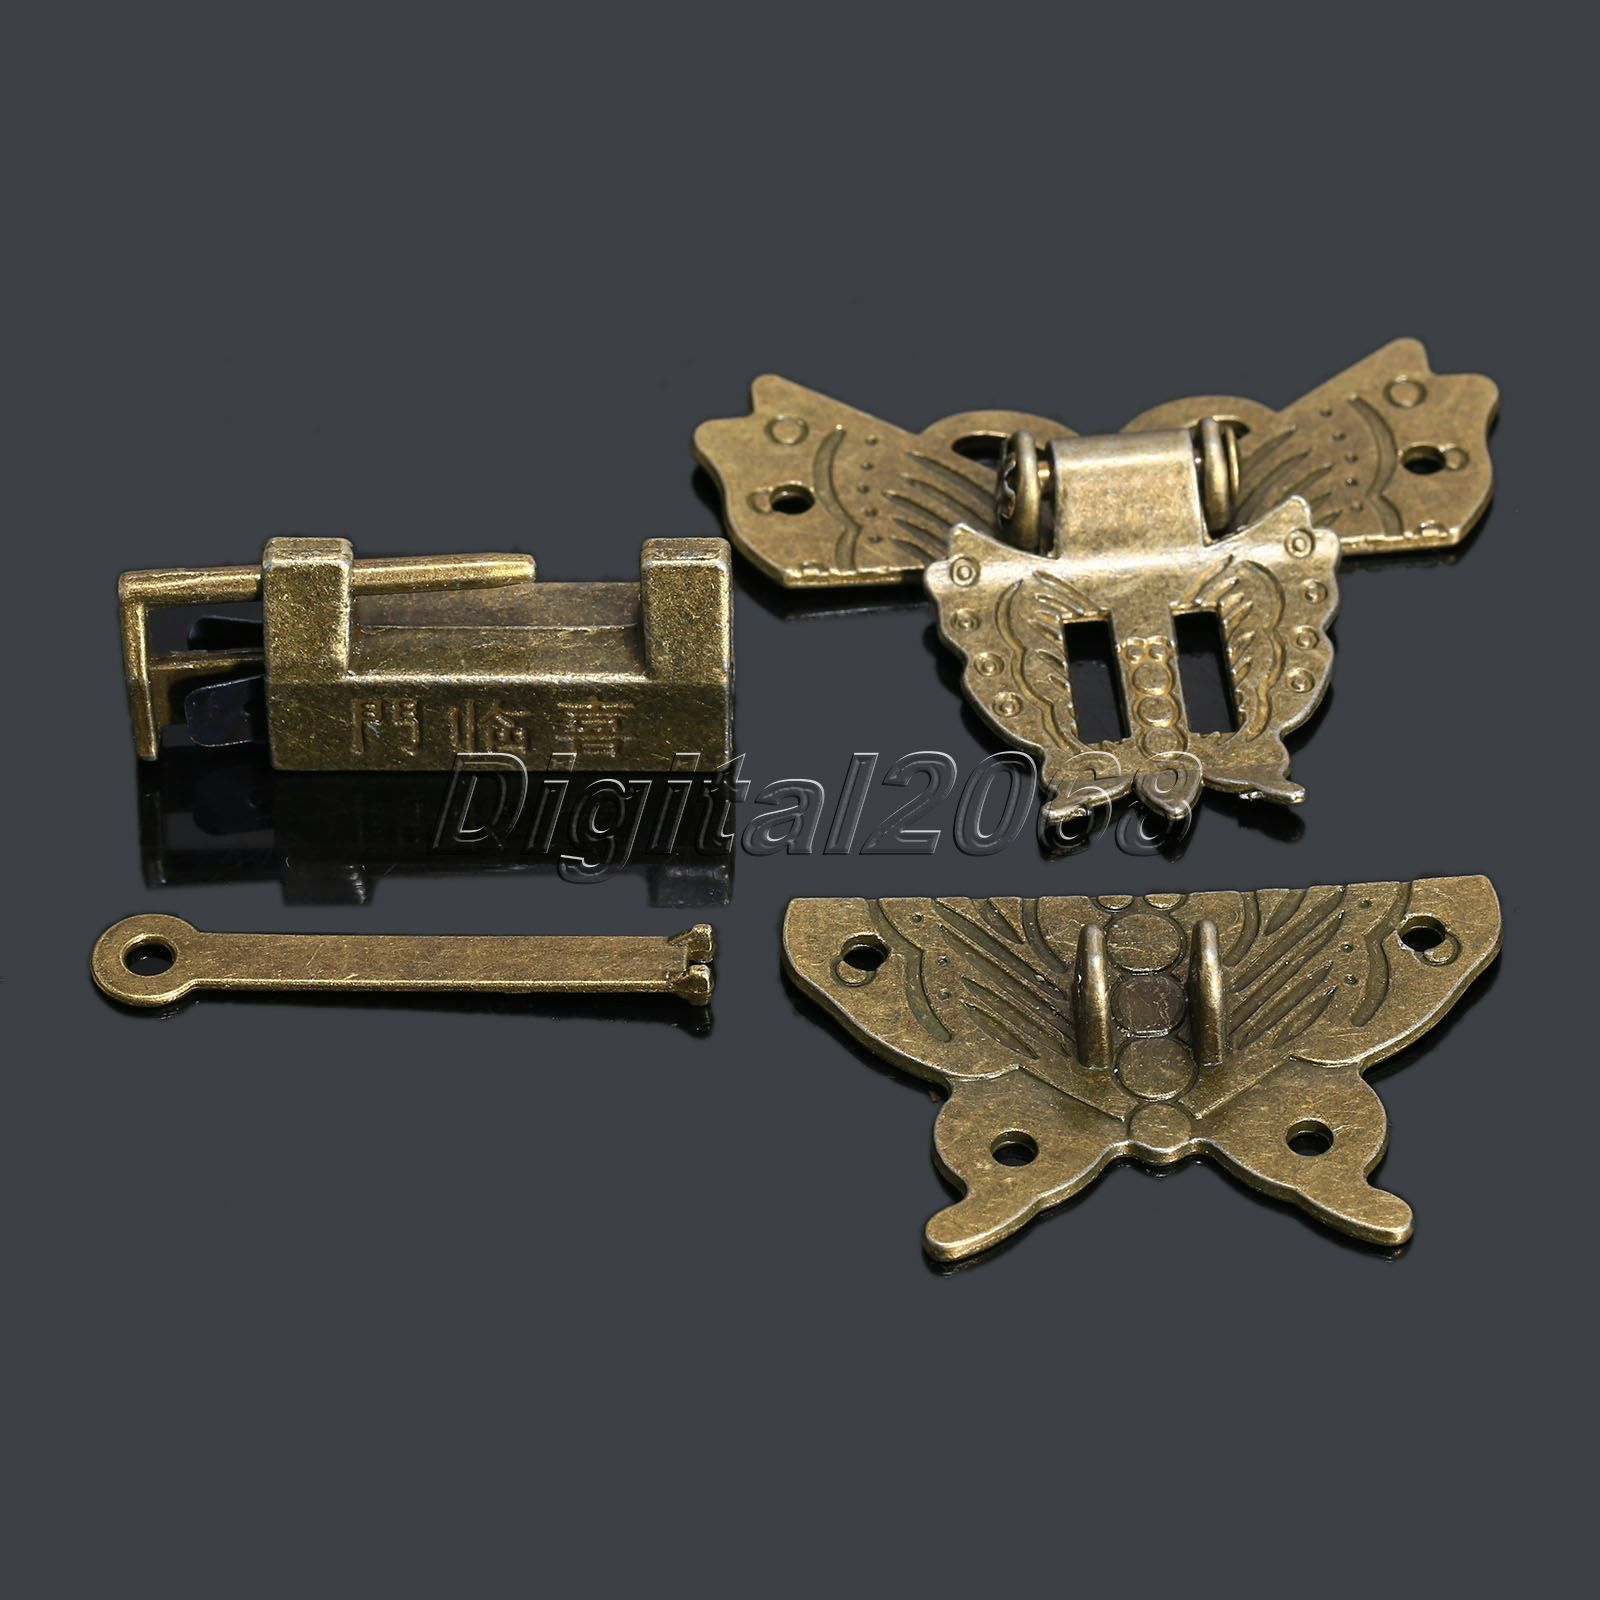 6Pcs Antique Latches Jewelry Gift Wooden Suitcase Case Hasp Antique Decorative Latch Hook Lock for Box Craft+Screws+Lock 59x55mm ancient swing hasp jewelry wooden box lock catch latches box buckle clasp hardware alloy buckle